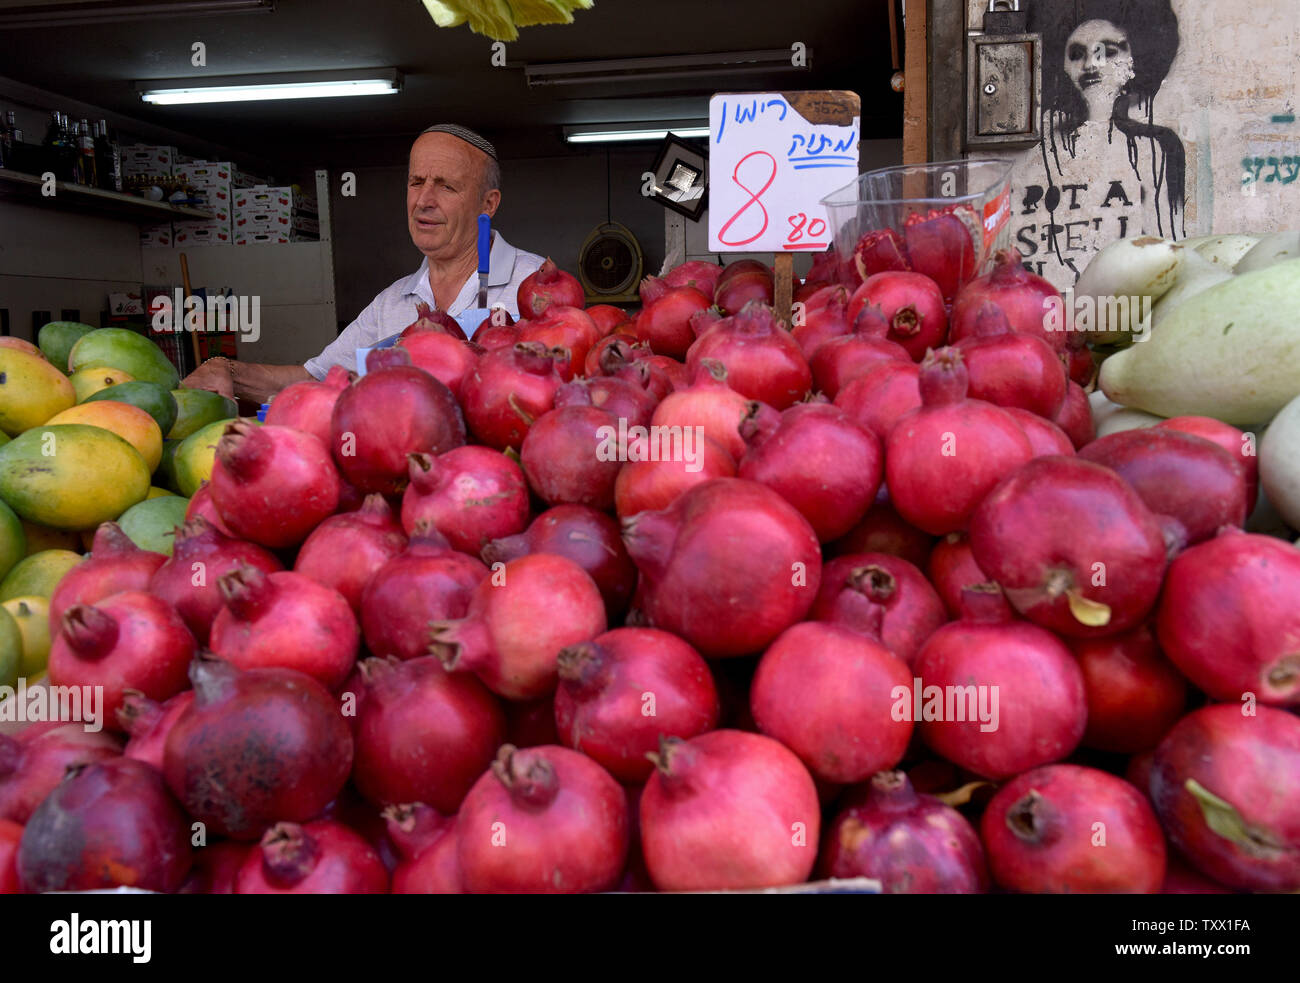 An Israeli sells pomegranates in the Mahane Yehuda Market in Jerusalem, Israel,  September 5, 2018, for Rosh HaShana, the Jewish New Year, which starts at sundown on Sunday, September 9, 2018. Pomegranates, apples and honey are traditionally eaten during the Jewish High holidays which is the period of repentance in the Jewish calendar. The abundance of seeds in the pomegranate is associated with the 613 commandments in the Torah and serve as symbols of righteousness and fruitfulness.  Photo by Debbie Hill/UPI - Stock Image